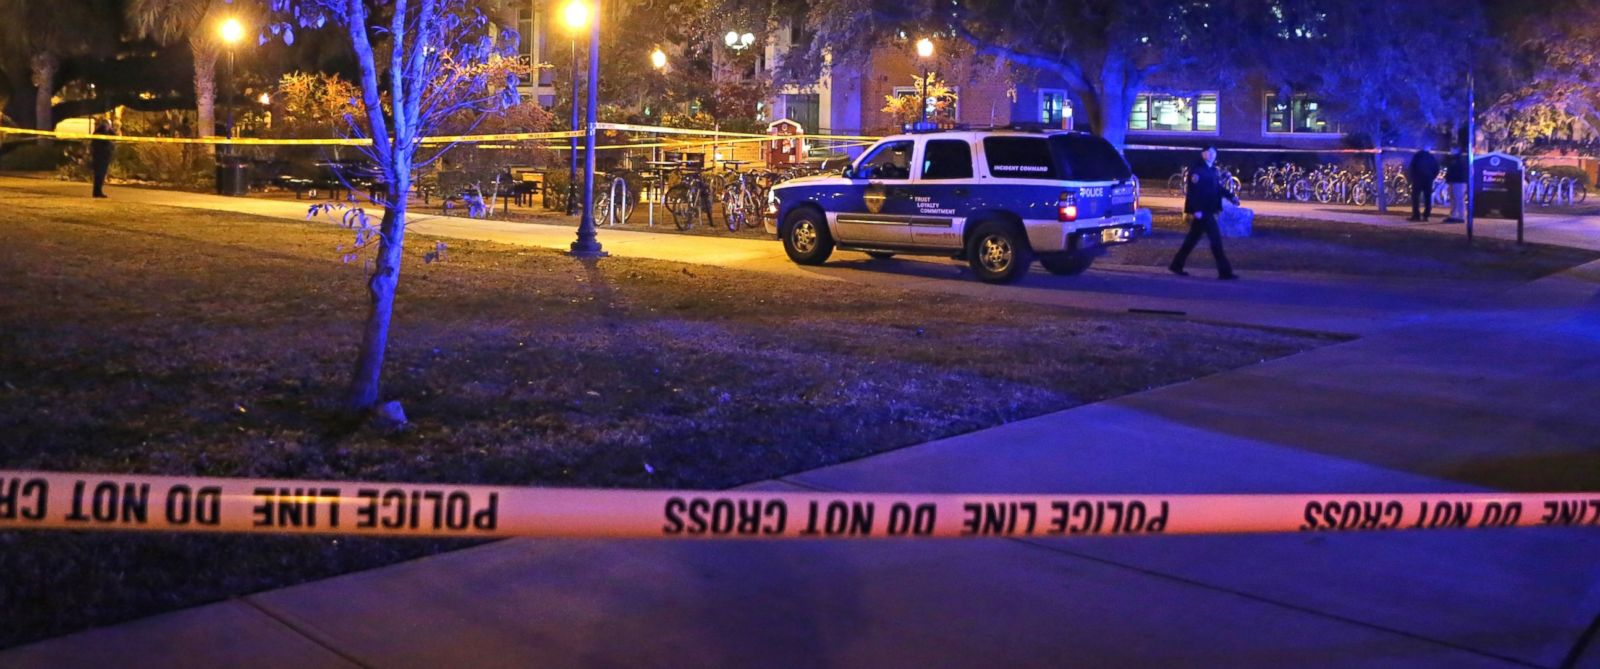 PHOTO: Police investigate a shooting at Strozier Library on Florida State Universitys campus, Nov. 20, 2014, in Tallahassee, Fla.